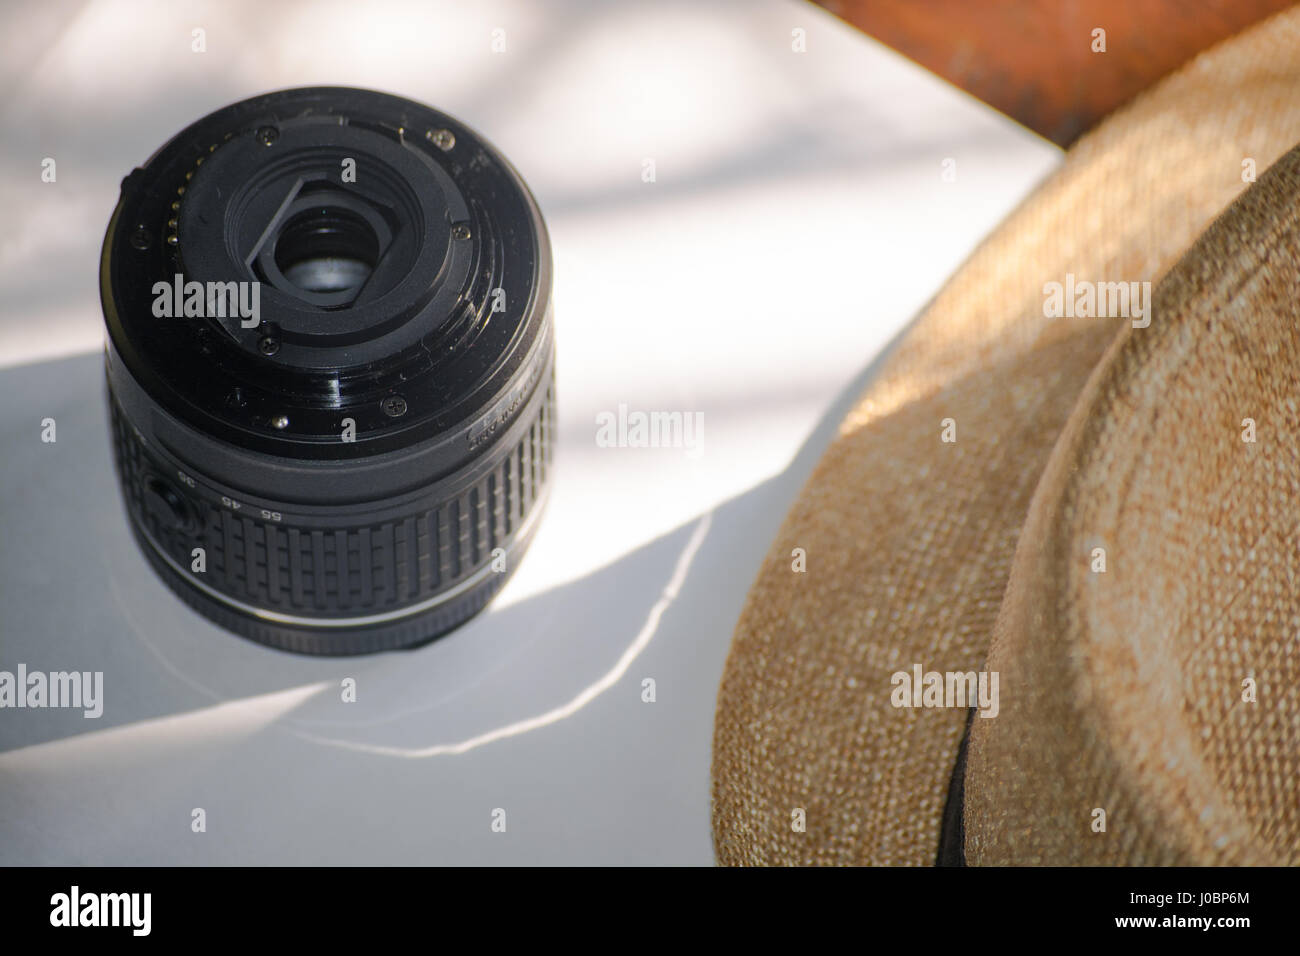 Dslr Camera Lens In Vintage Style Best For Wallpapers And Stock